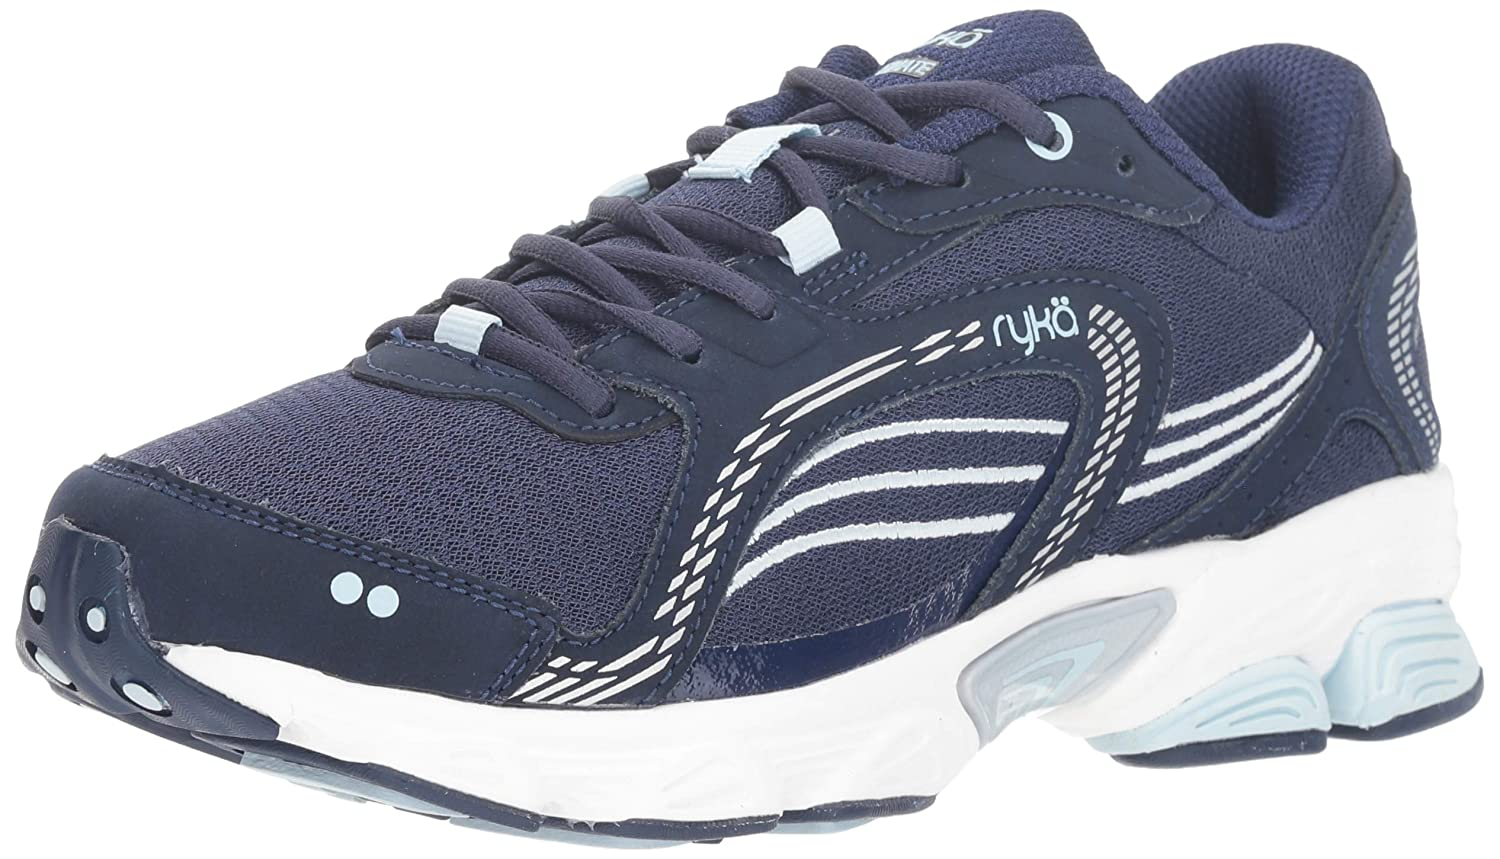 bluee Silver Ryka Women's Ultimate Running shoes